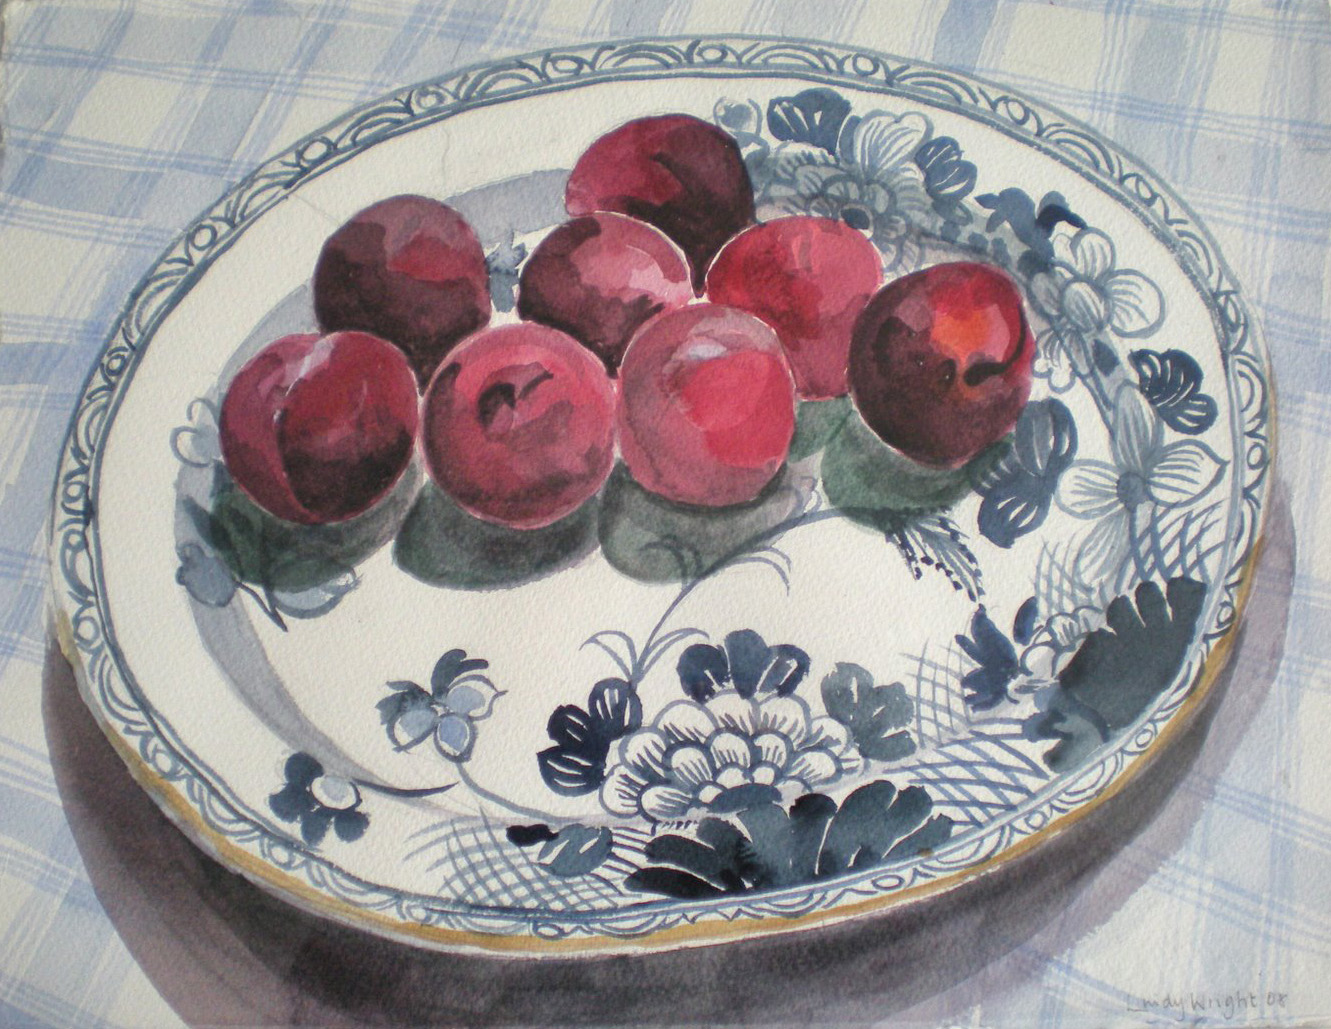 Plums on blue & white